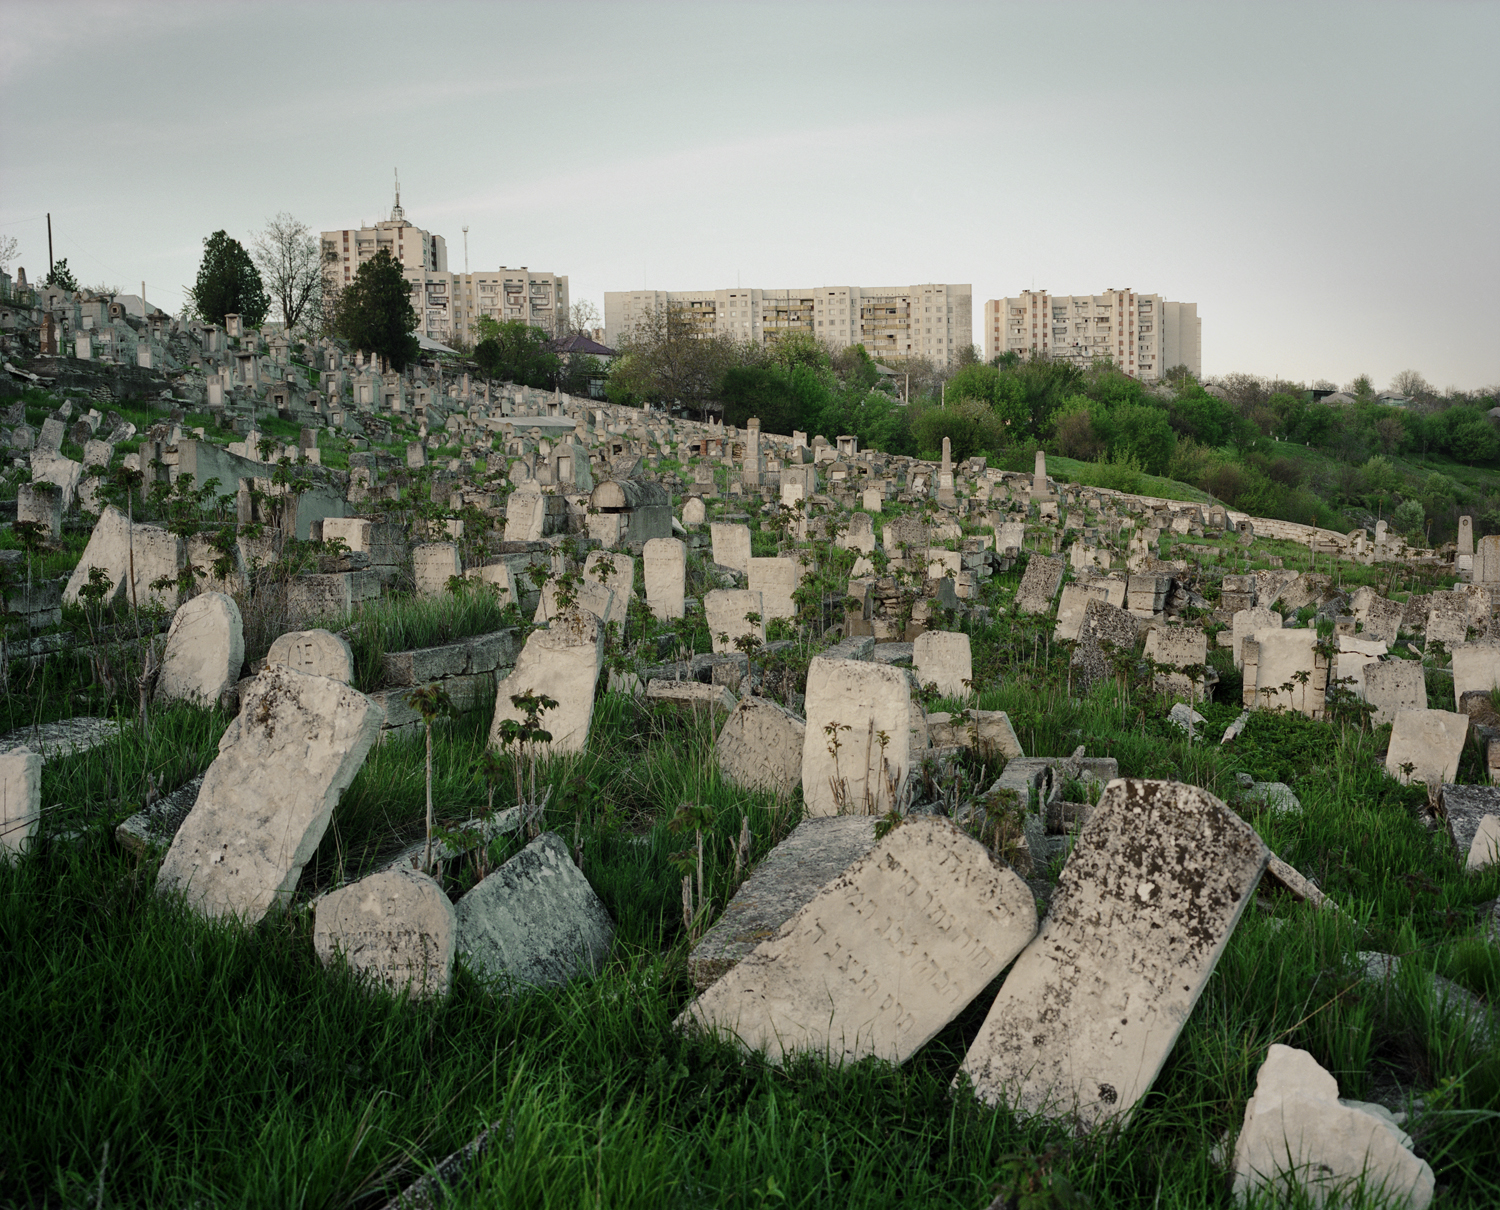 Jewish cemetery by the border of Ribnica.